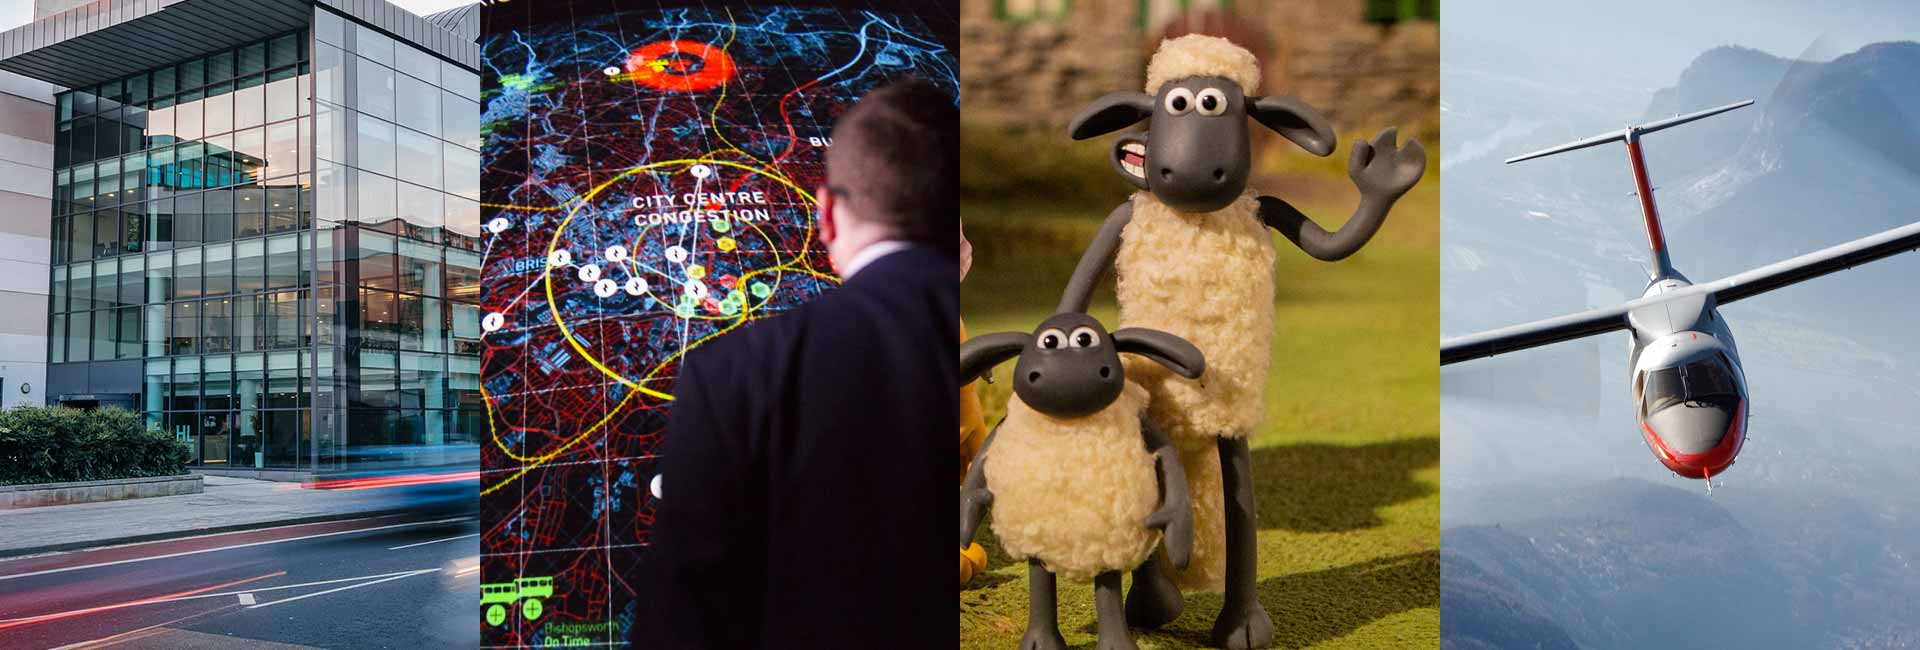 4 images including Shaun the Sheep, Hargreaves Lansdowne building, a man looking at a screen and Vertical Aerospace aircraft